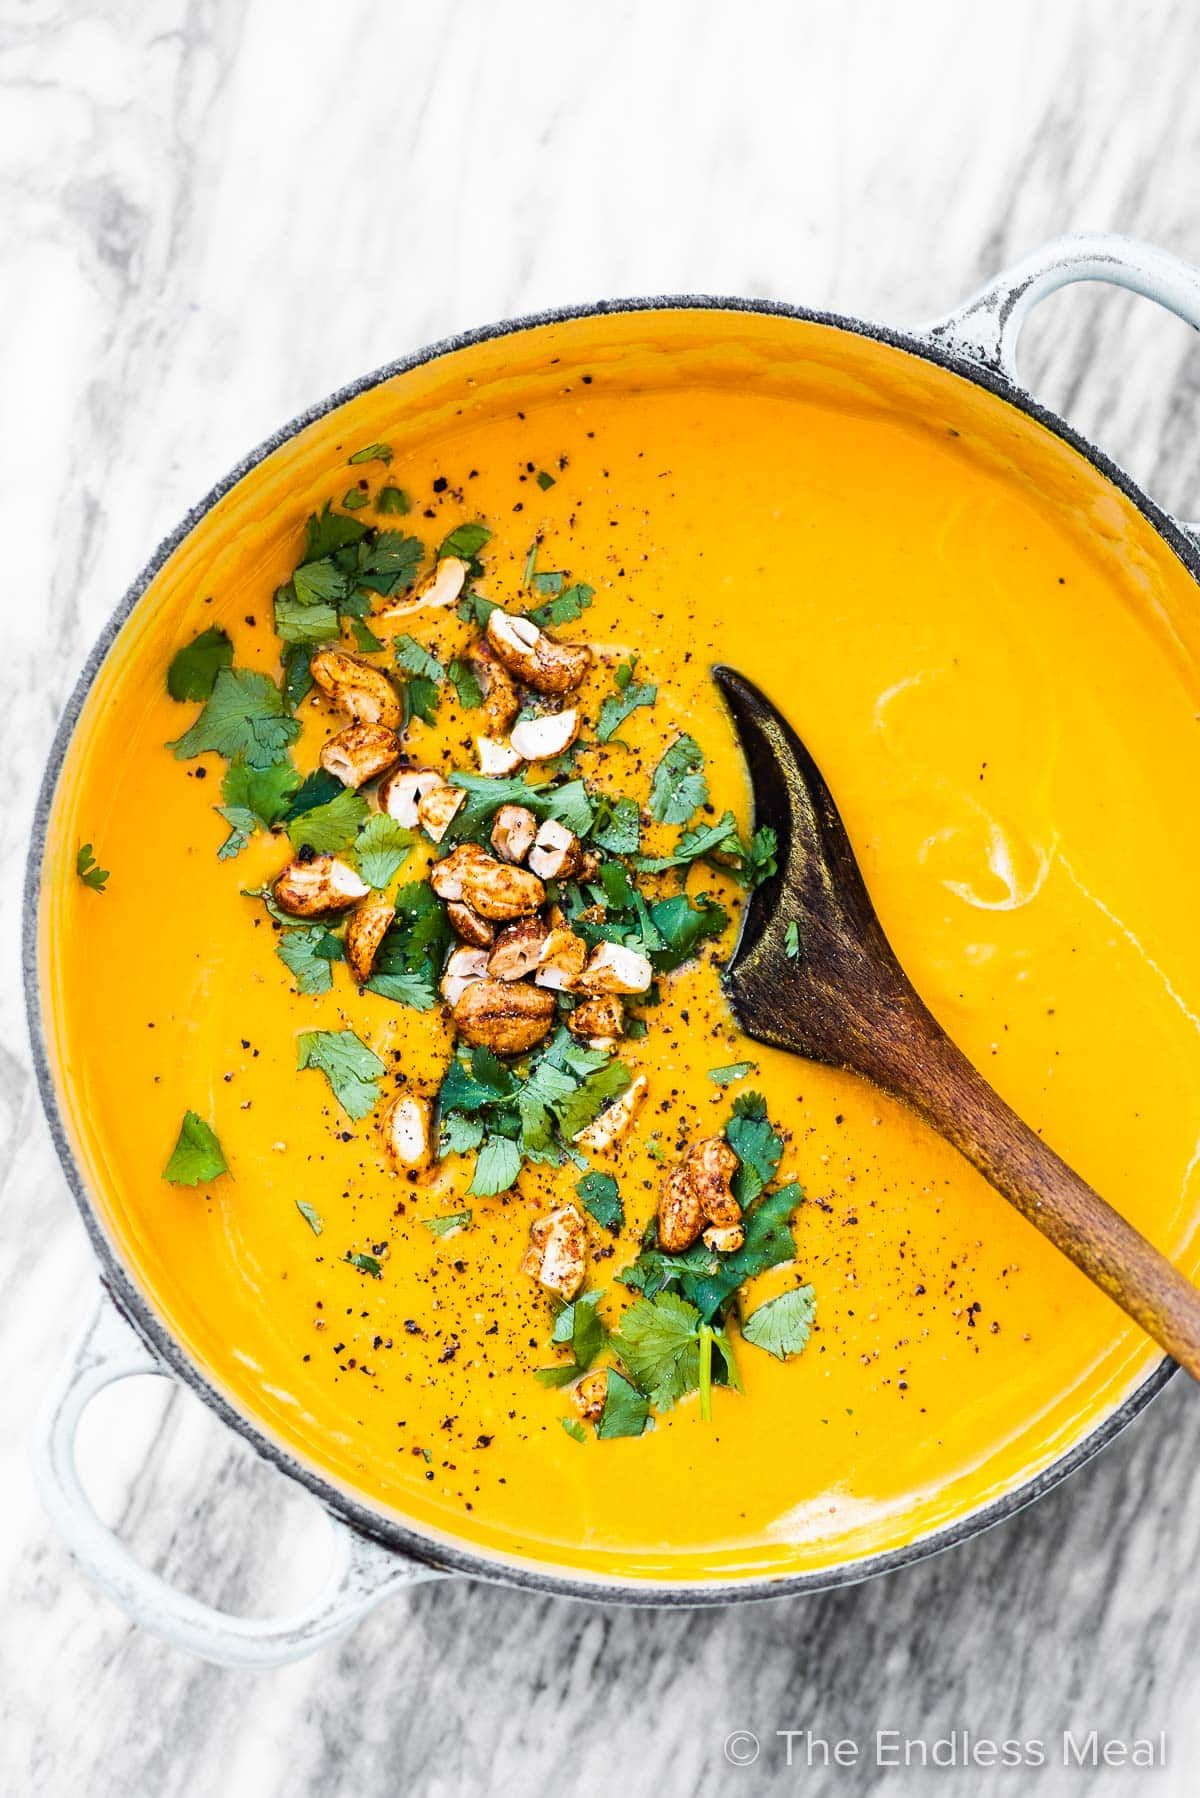 Easy Carrot Soup With Coconut And Ginger Recipe Carrot Soup Carrot Soup Recipes Carrot Ginger Soup Vegan